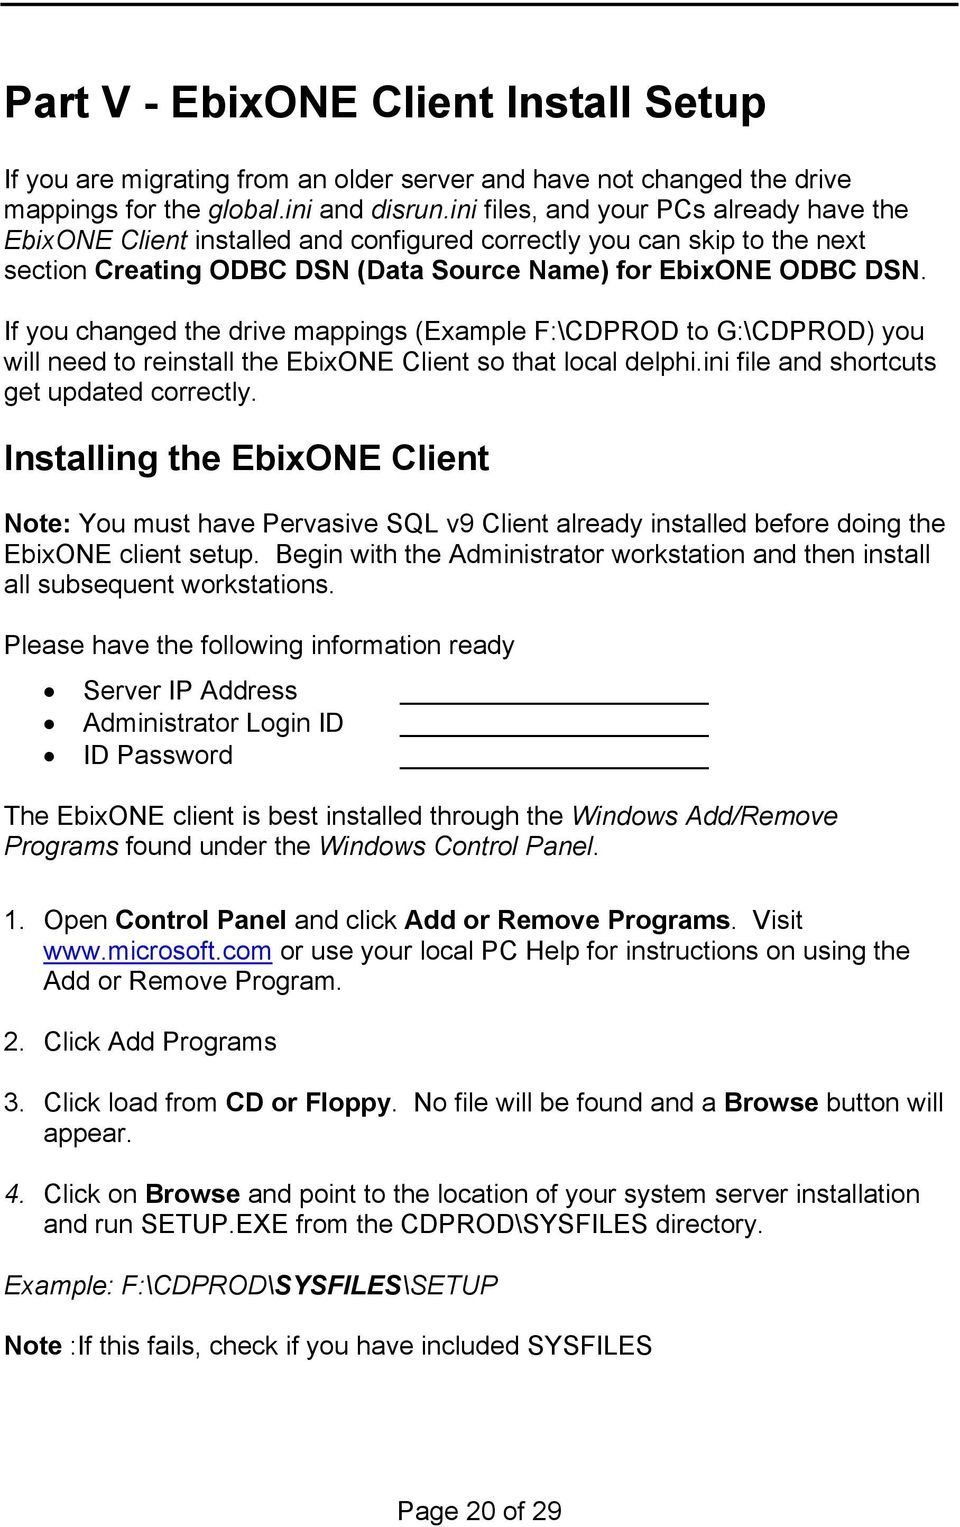 If you changed the drive mappings (Example F:\CDPROD to G:\CDPROD) you will need to reinstall the EbixONE Client so that local delphi.ini file and shortcuts get updated correctly.